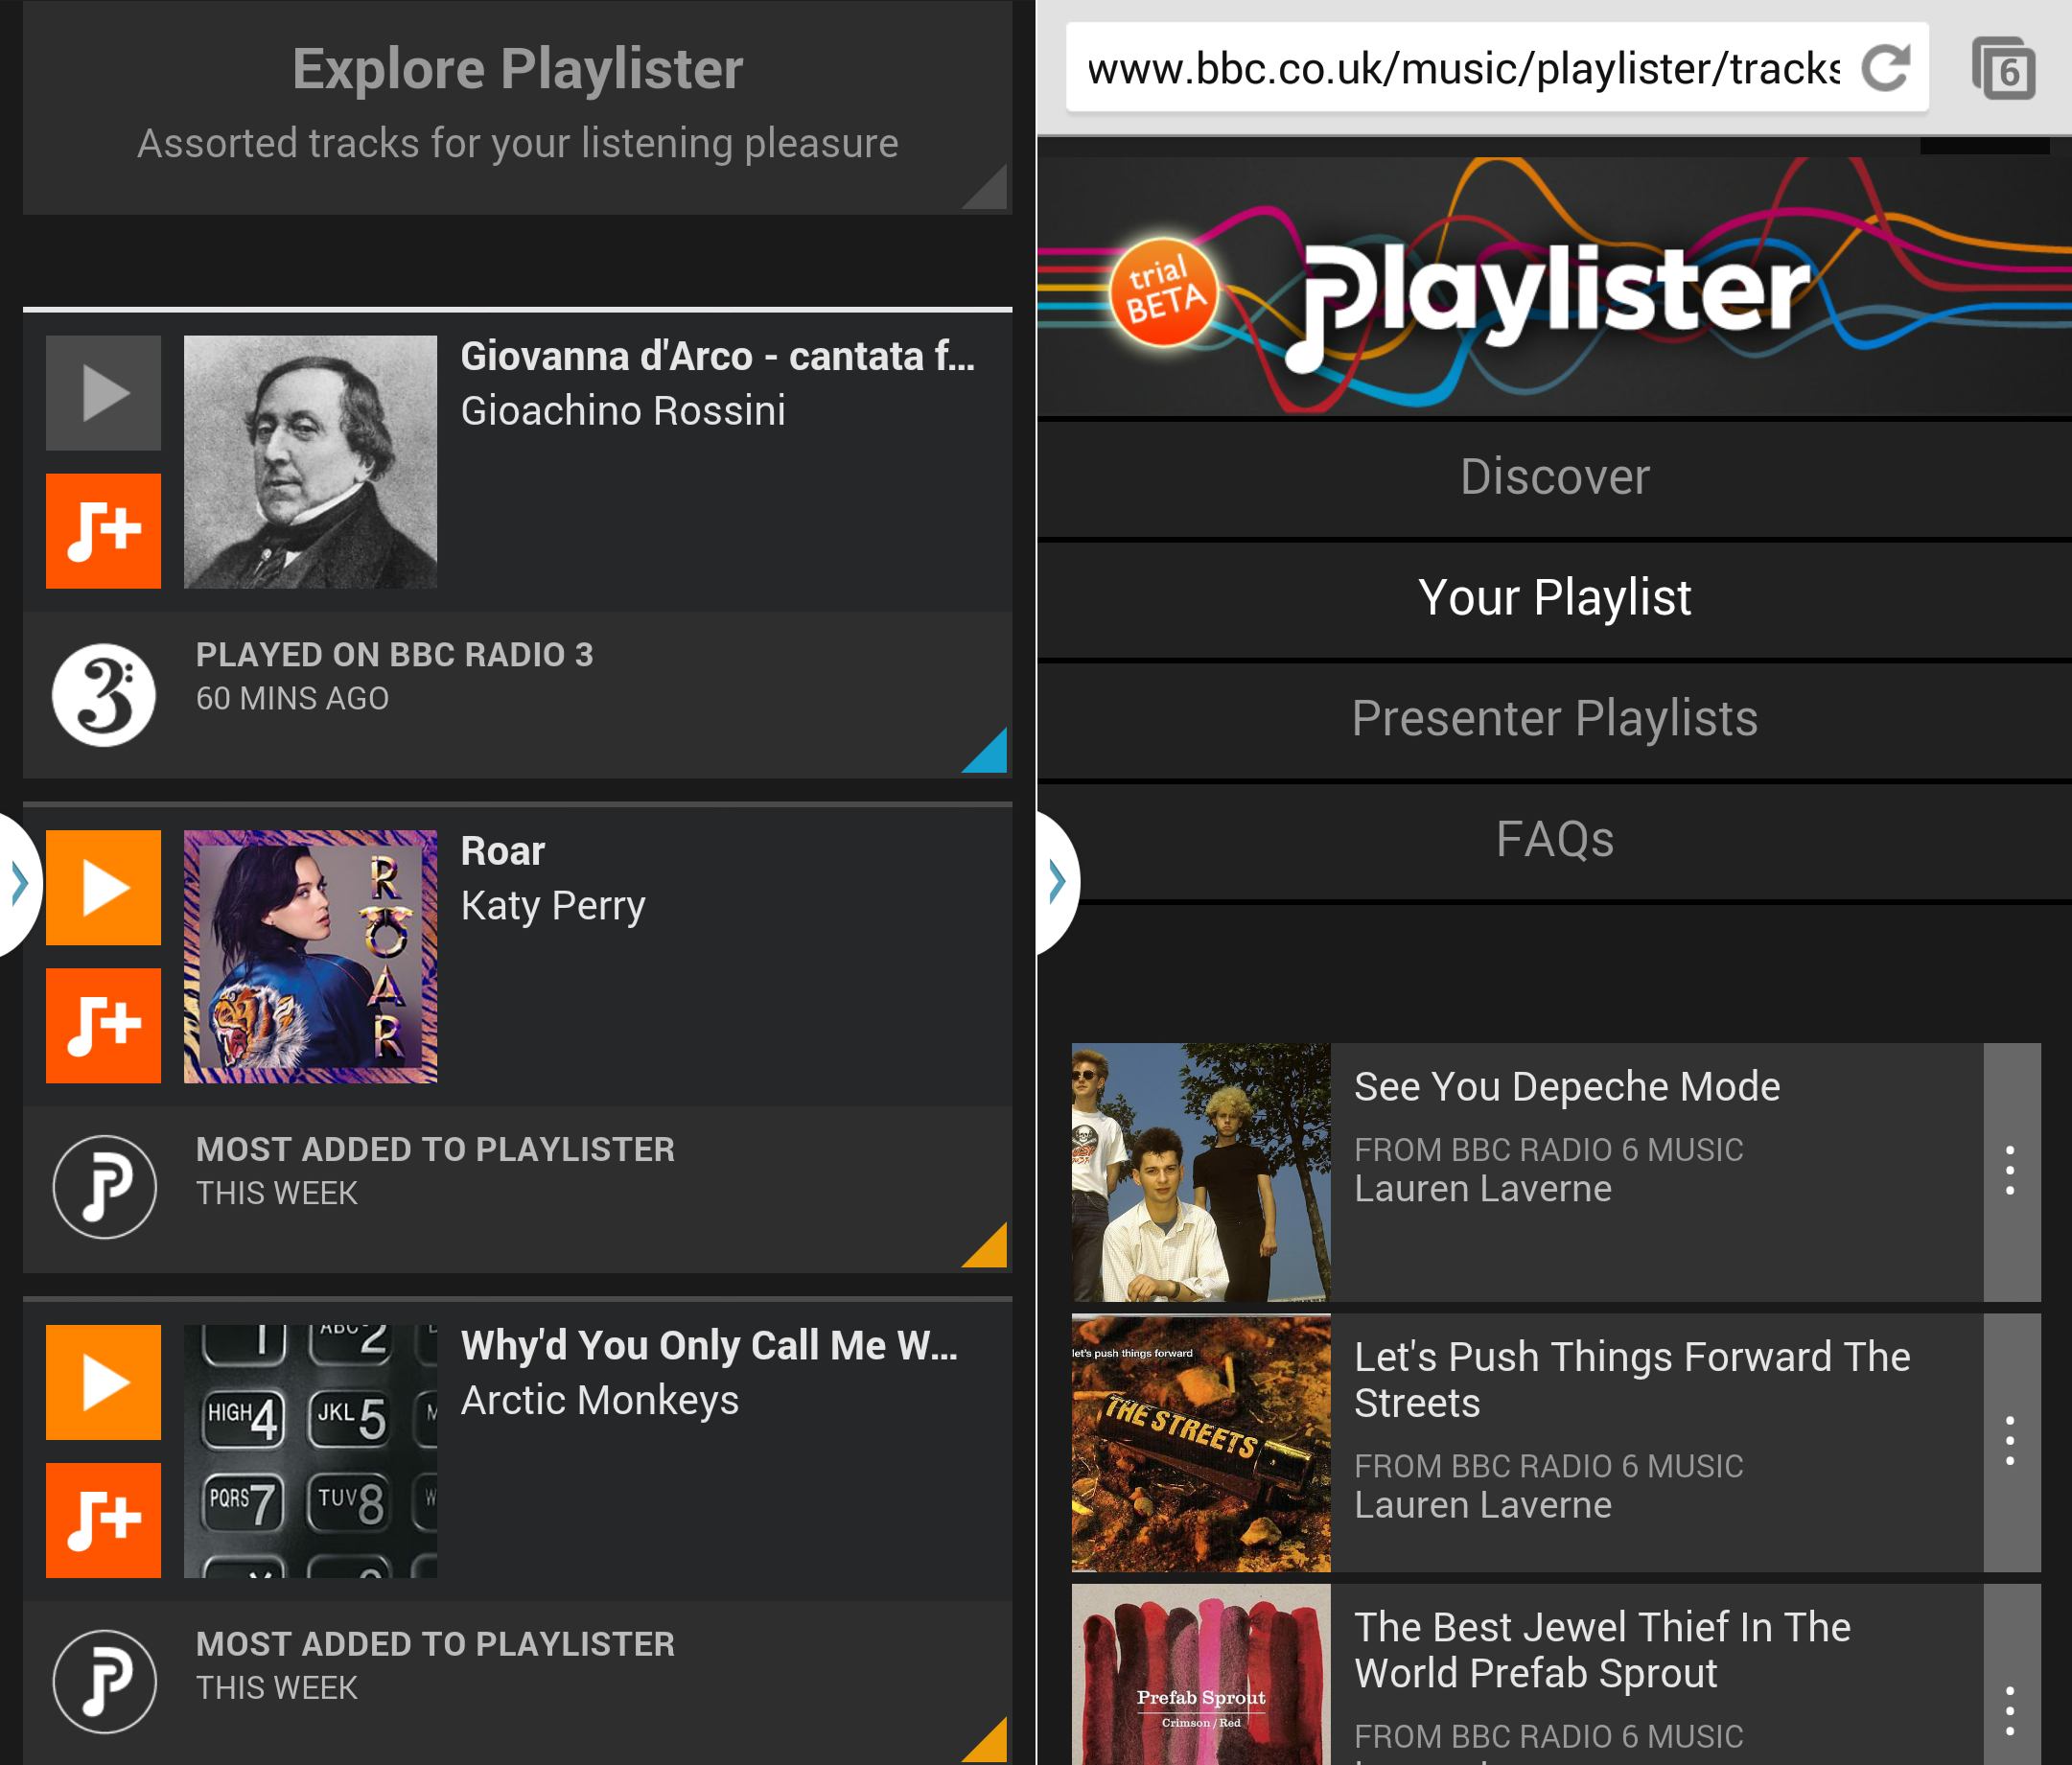 playlister mobile How to use the BBCs new Playlister music service